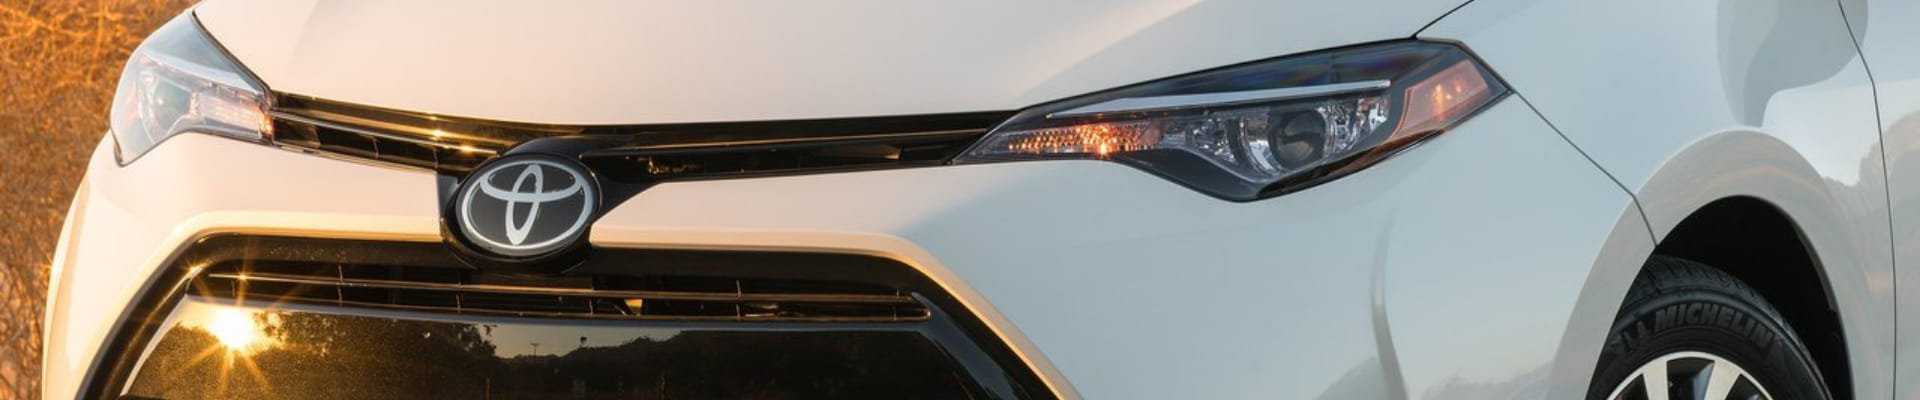 Close up angle of the front grille on a white used Toyota Corolla as the sun glares of the front bumper